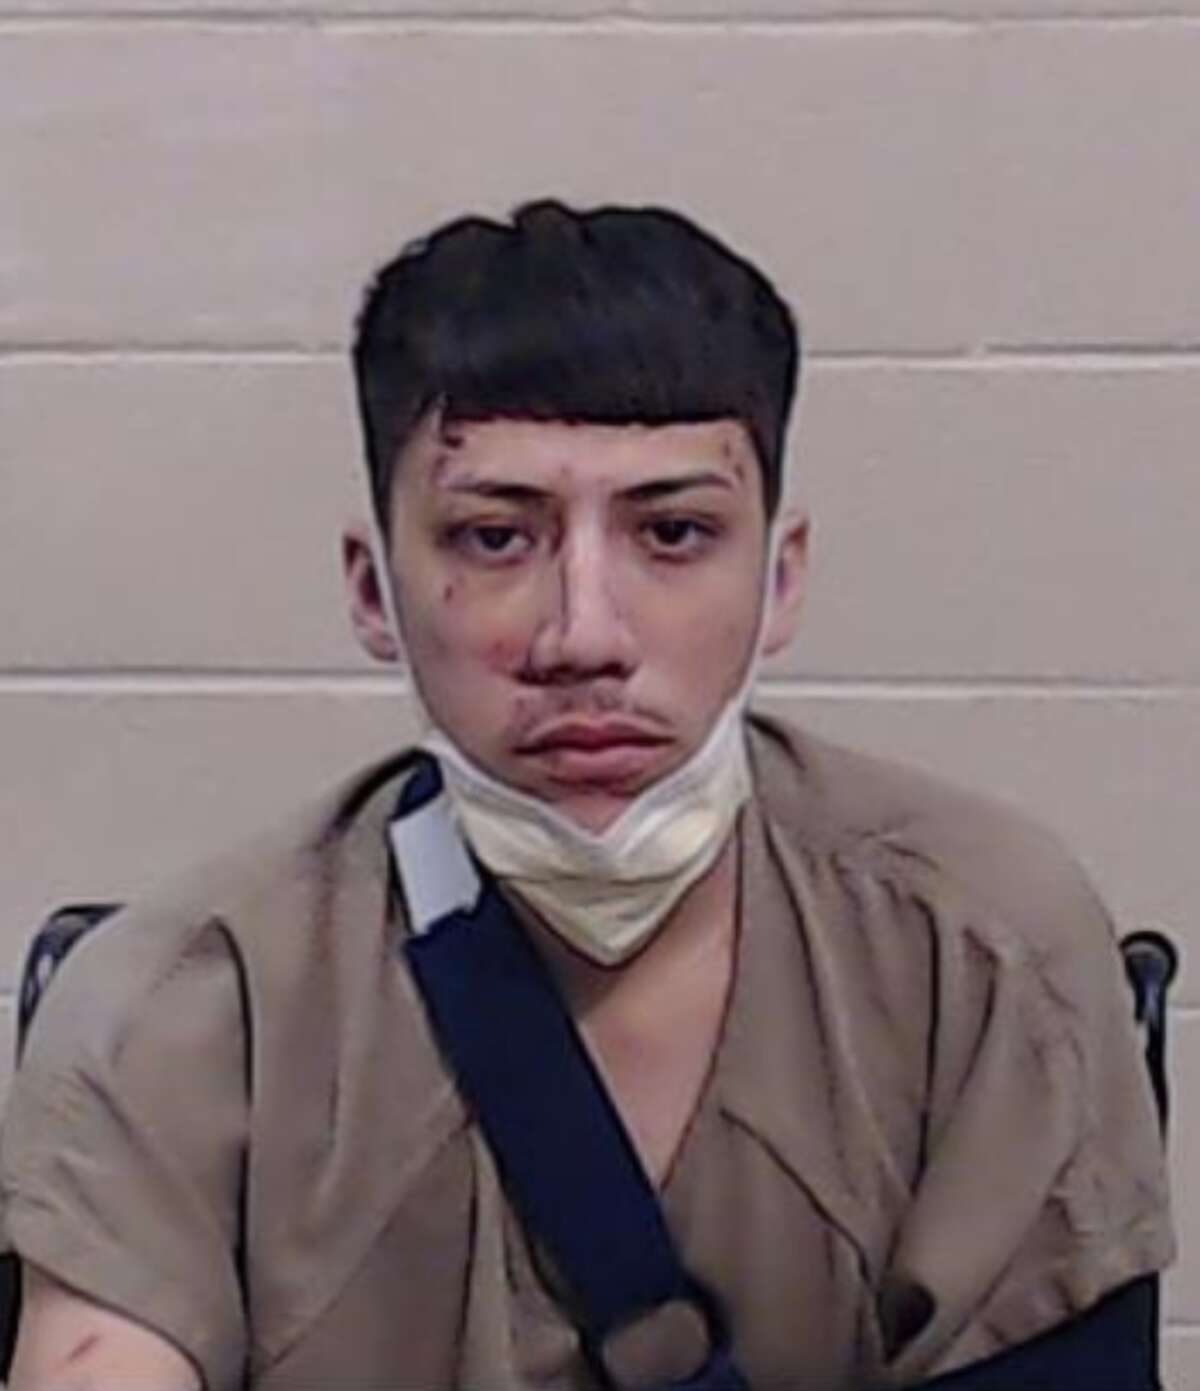 Leonel Torres, 22, is facing two counts of intoxicated manslaughter, a second-degree felony.